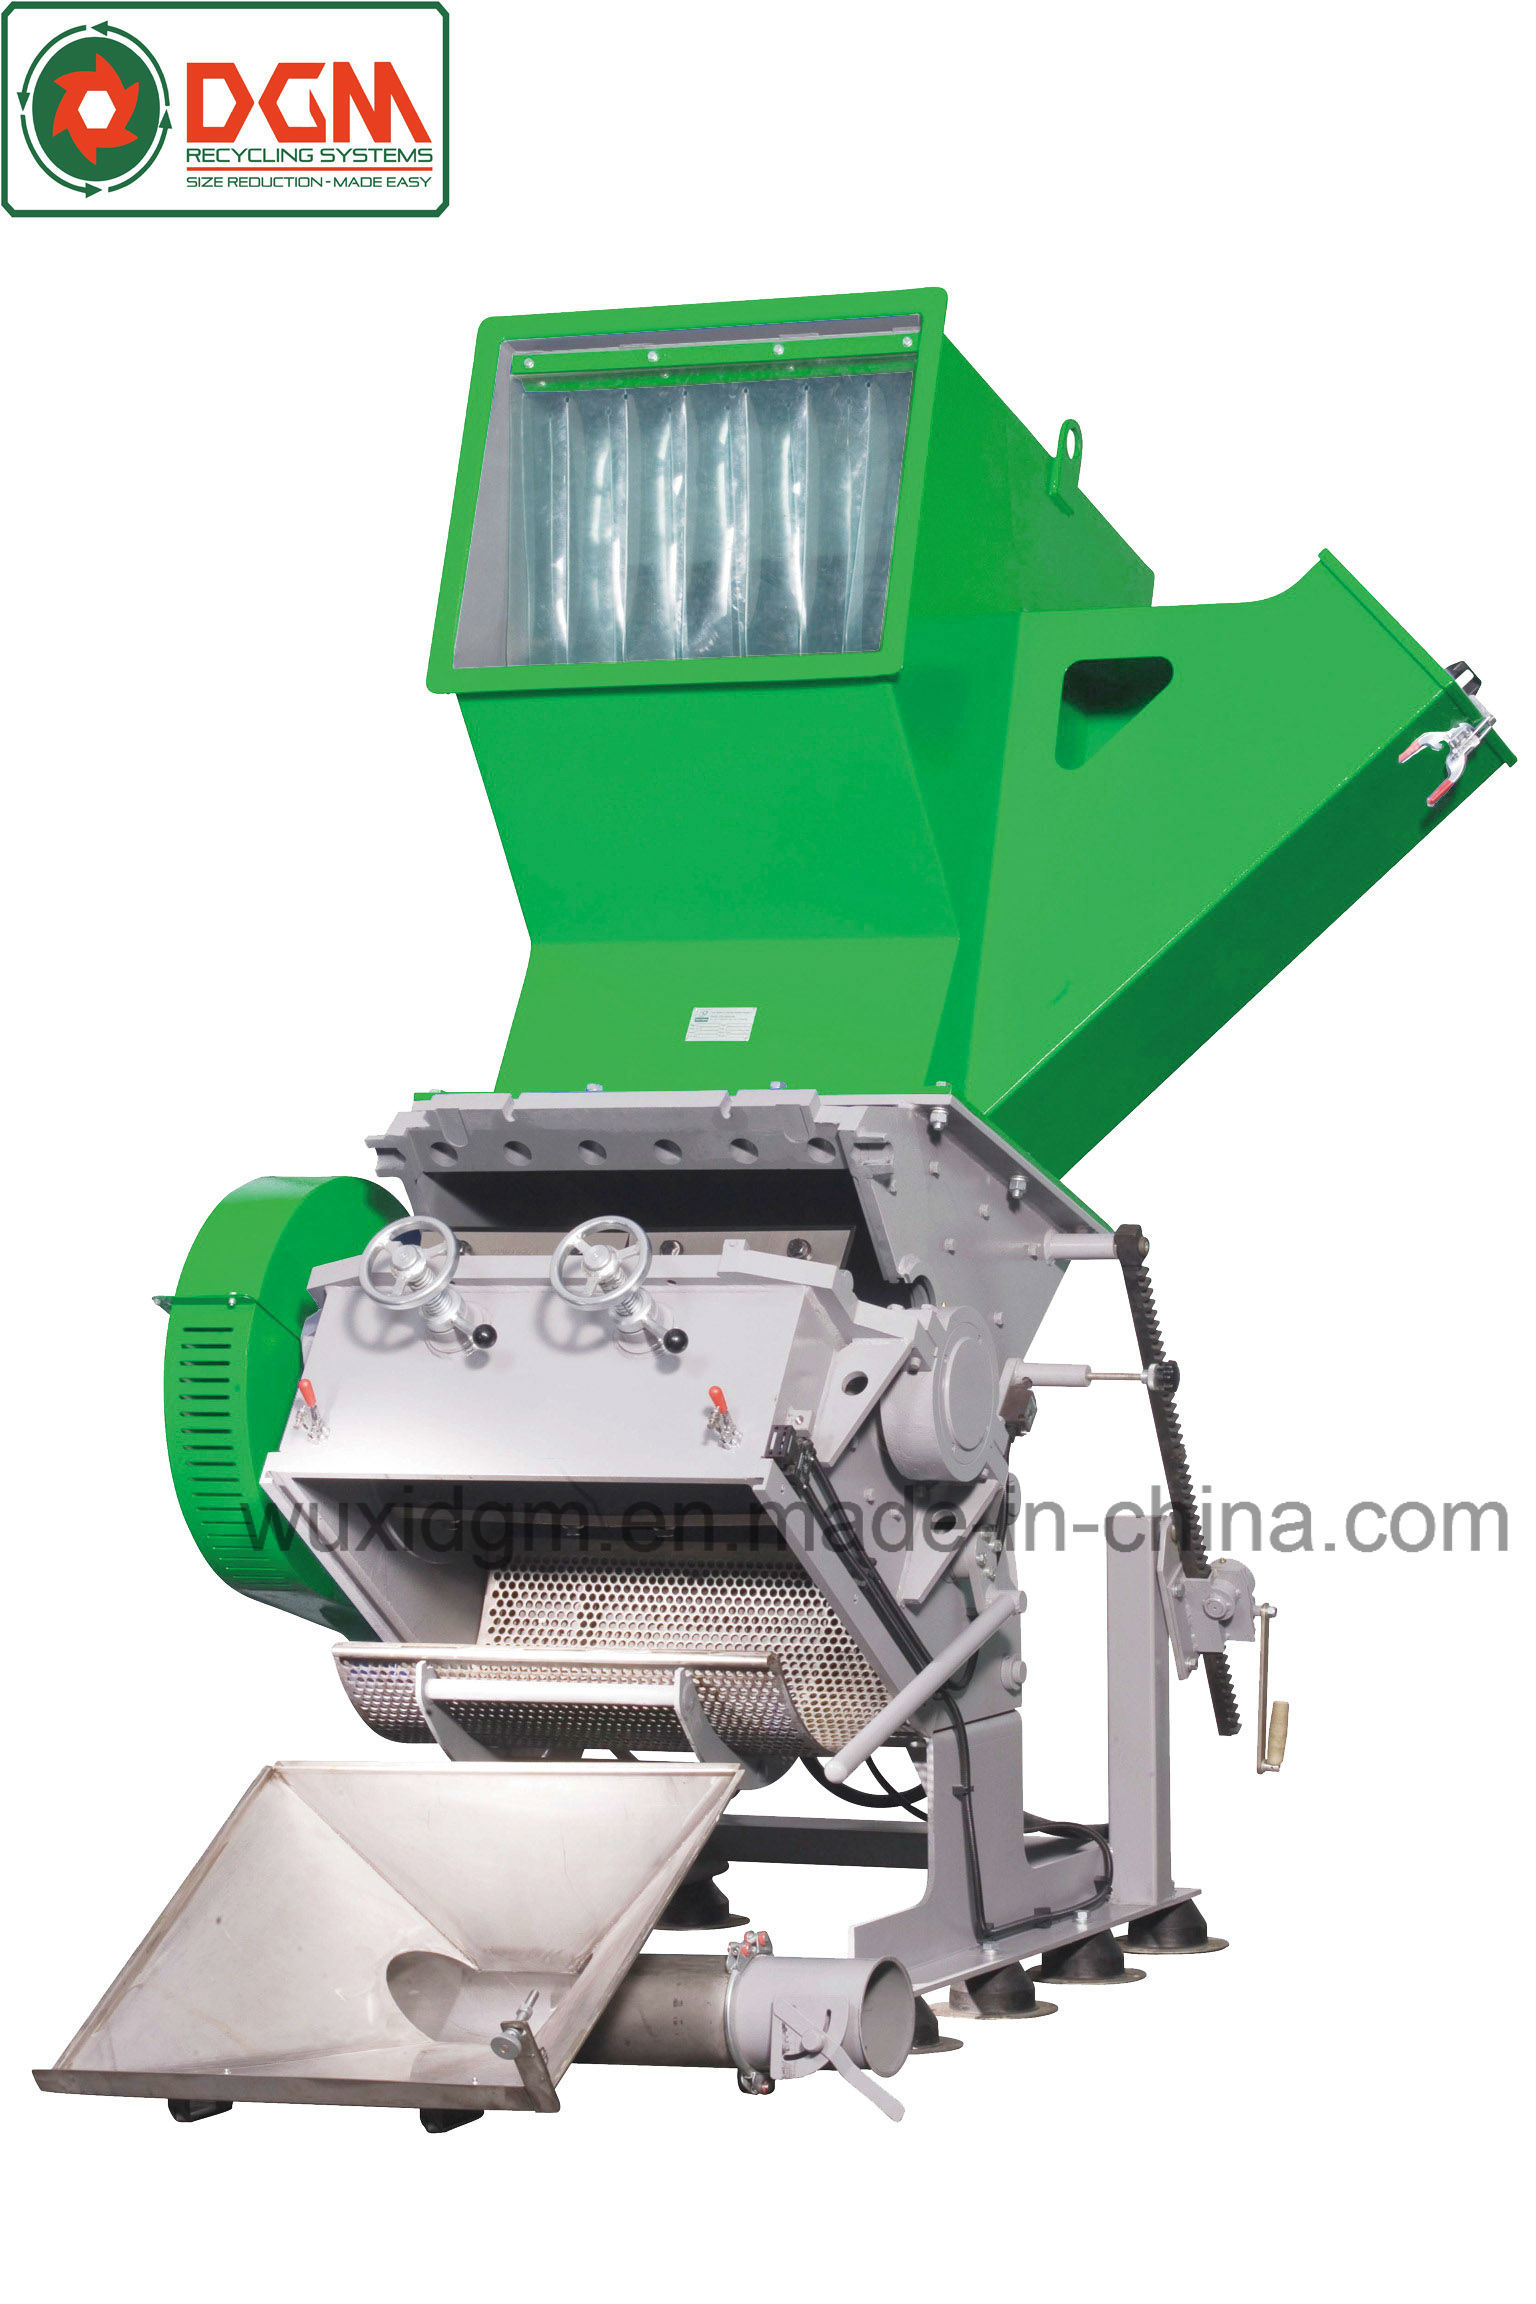 Dge300600 Economical Granulator